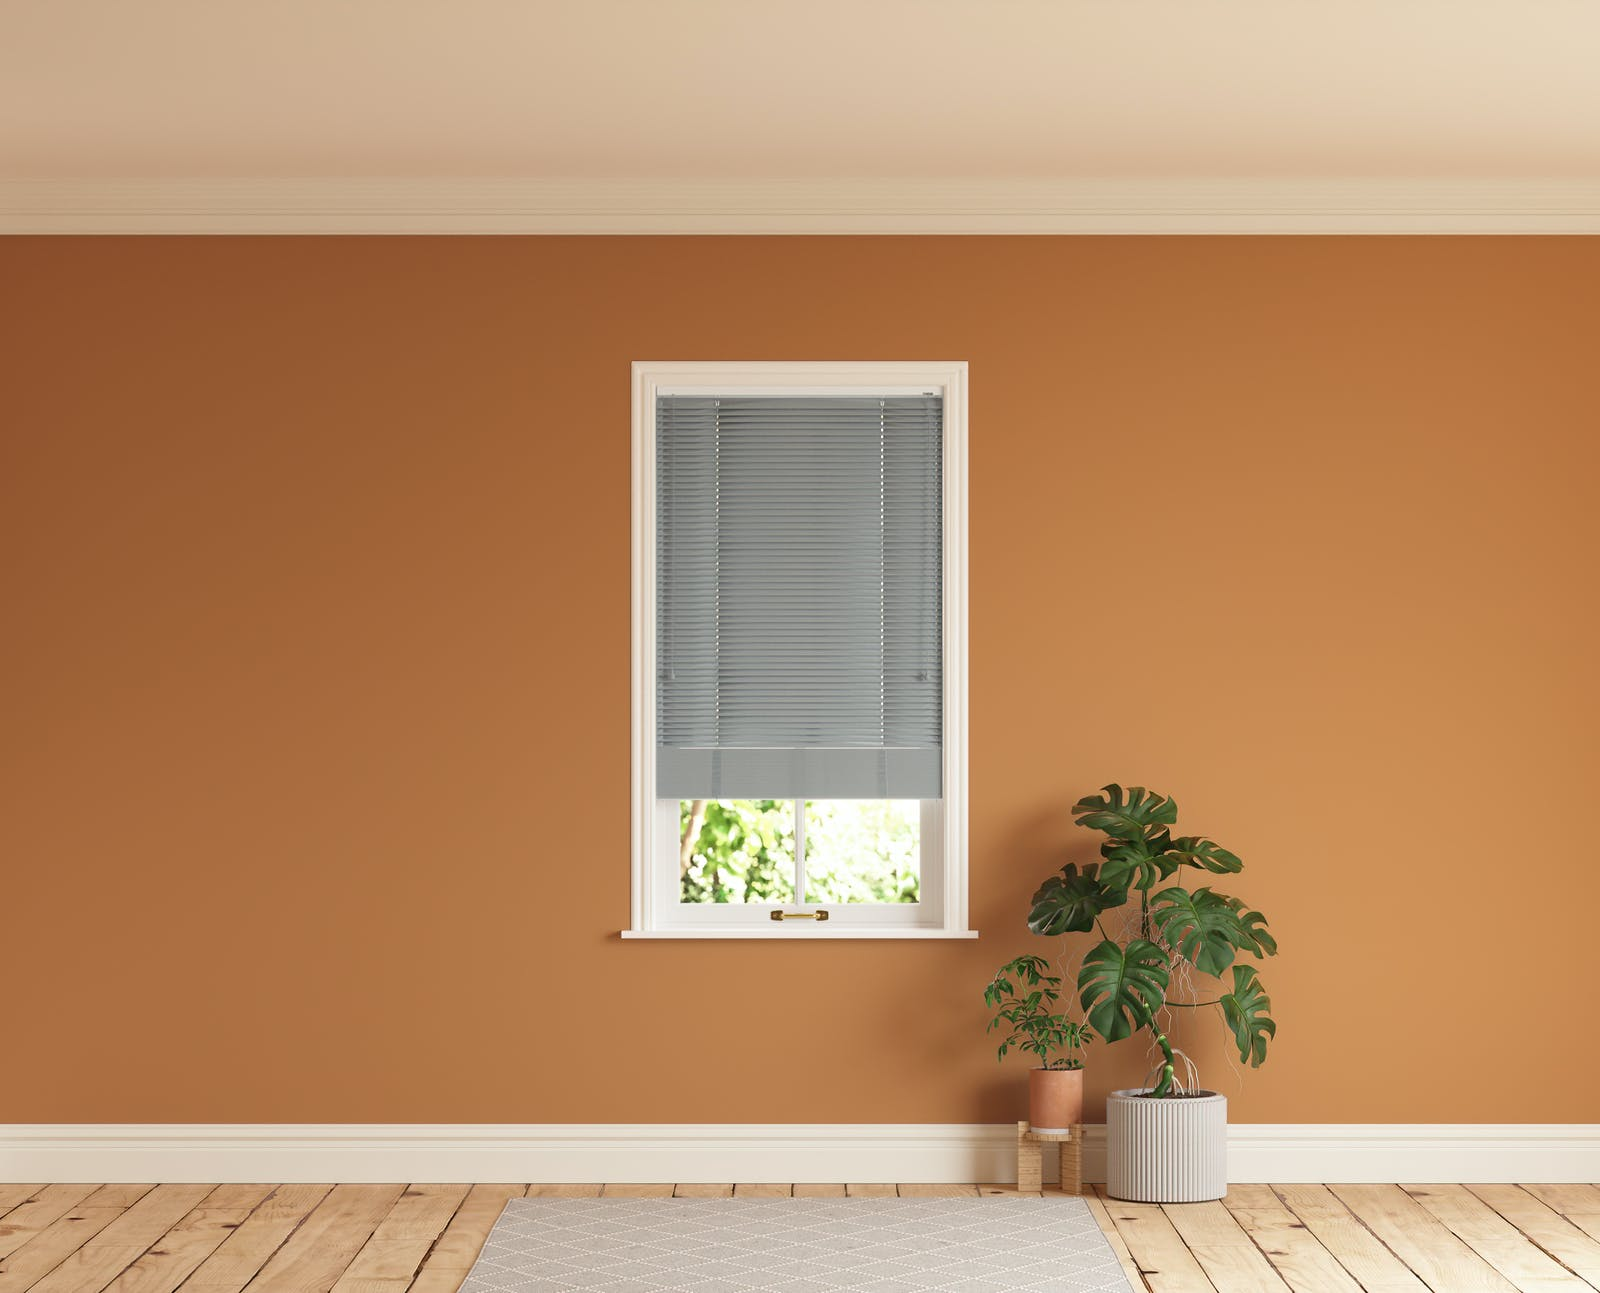 Room with walls painted in Lick Orange 02 and Grey 06 Venetian fine grain blinds